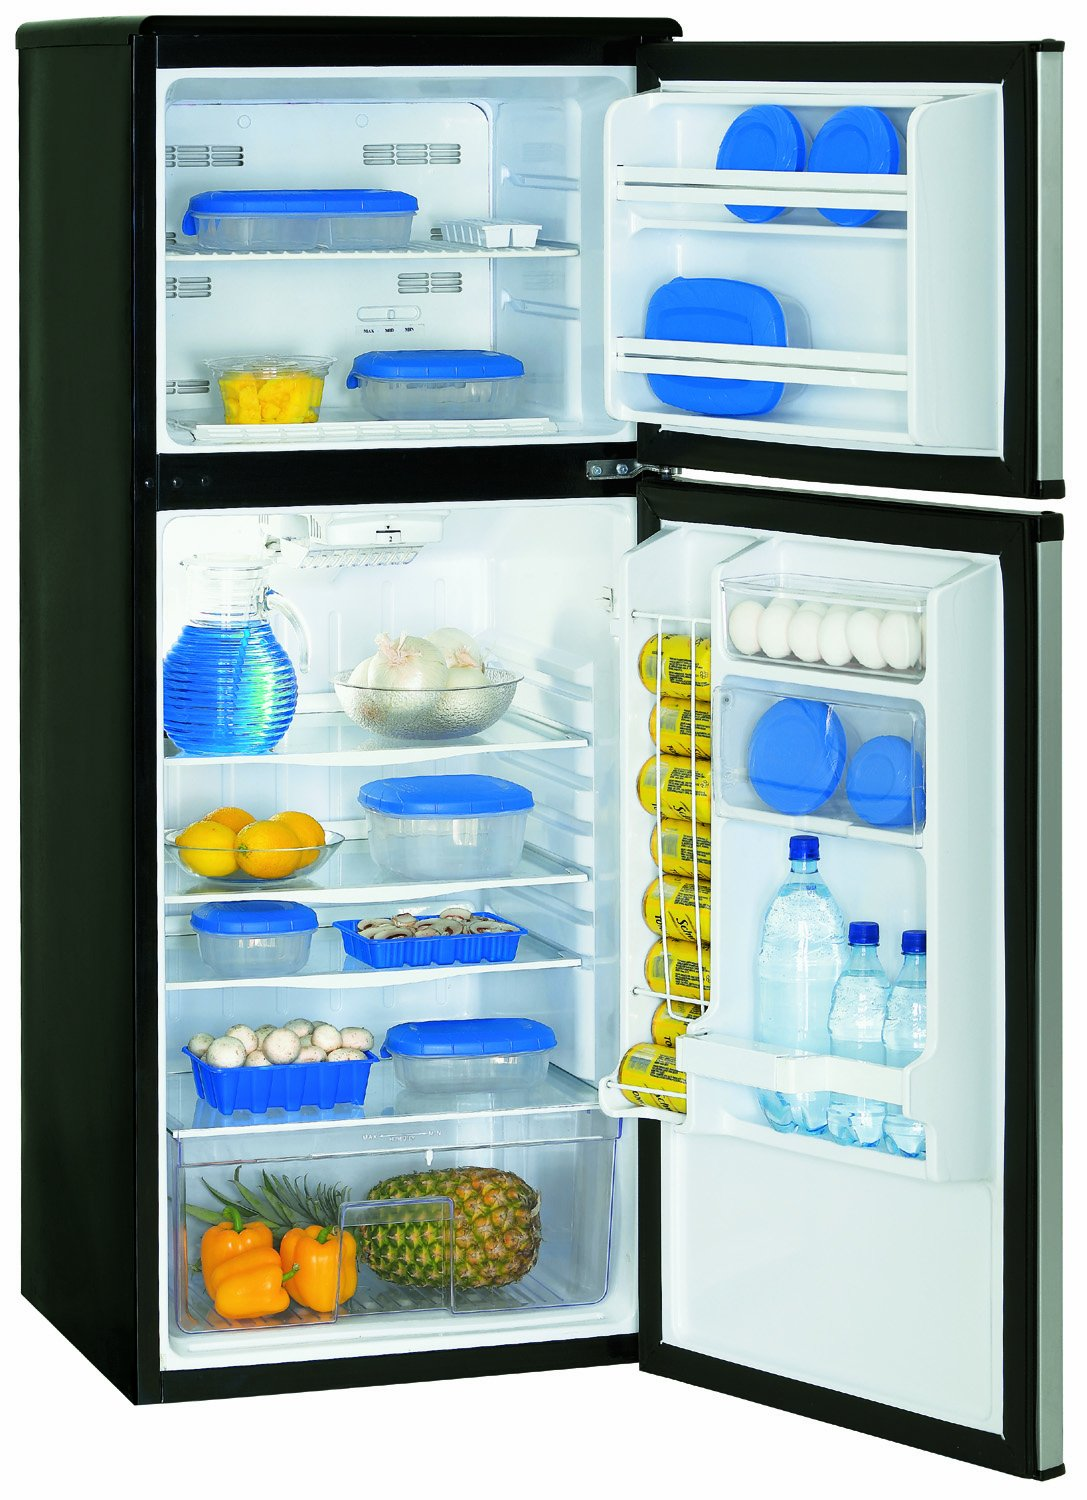 Amazon.com: Danby 9.1 cu.ft frost free refrigerator (Black ...